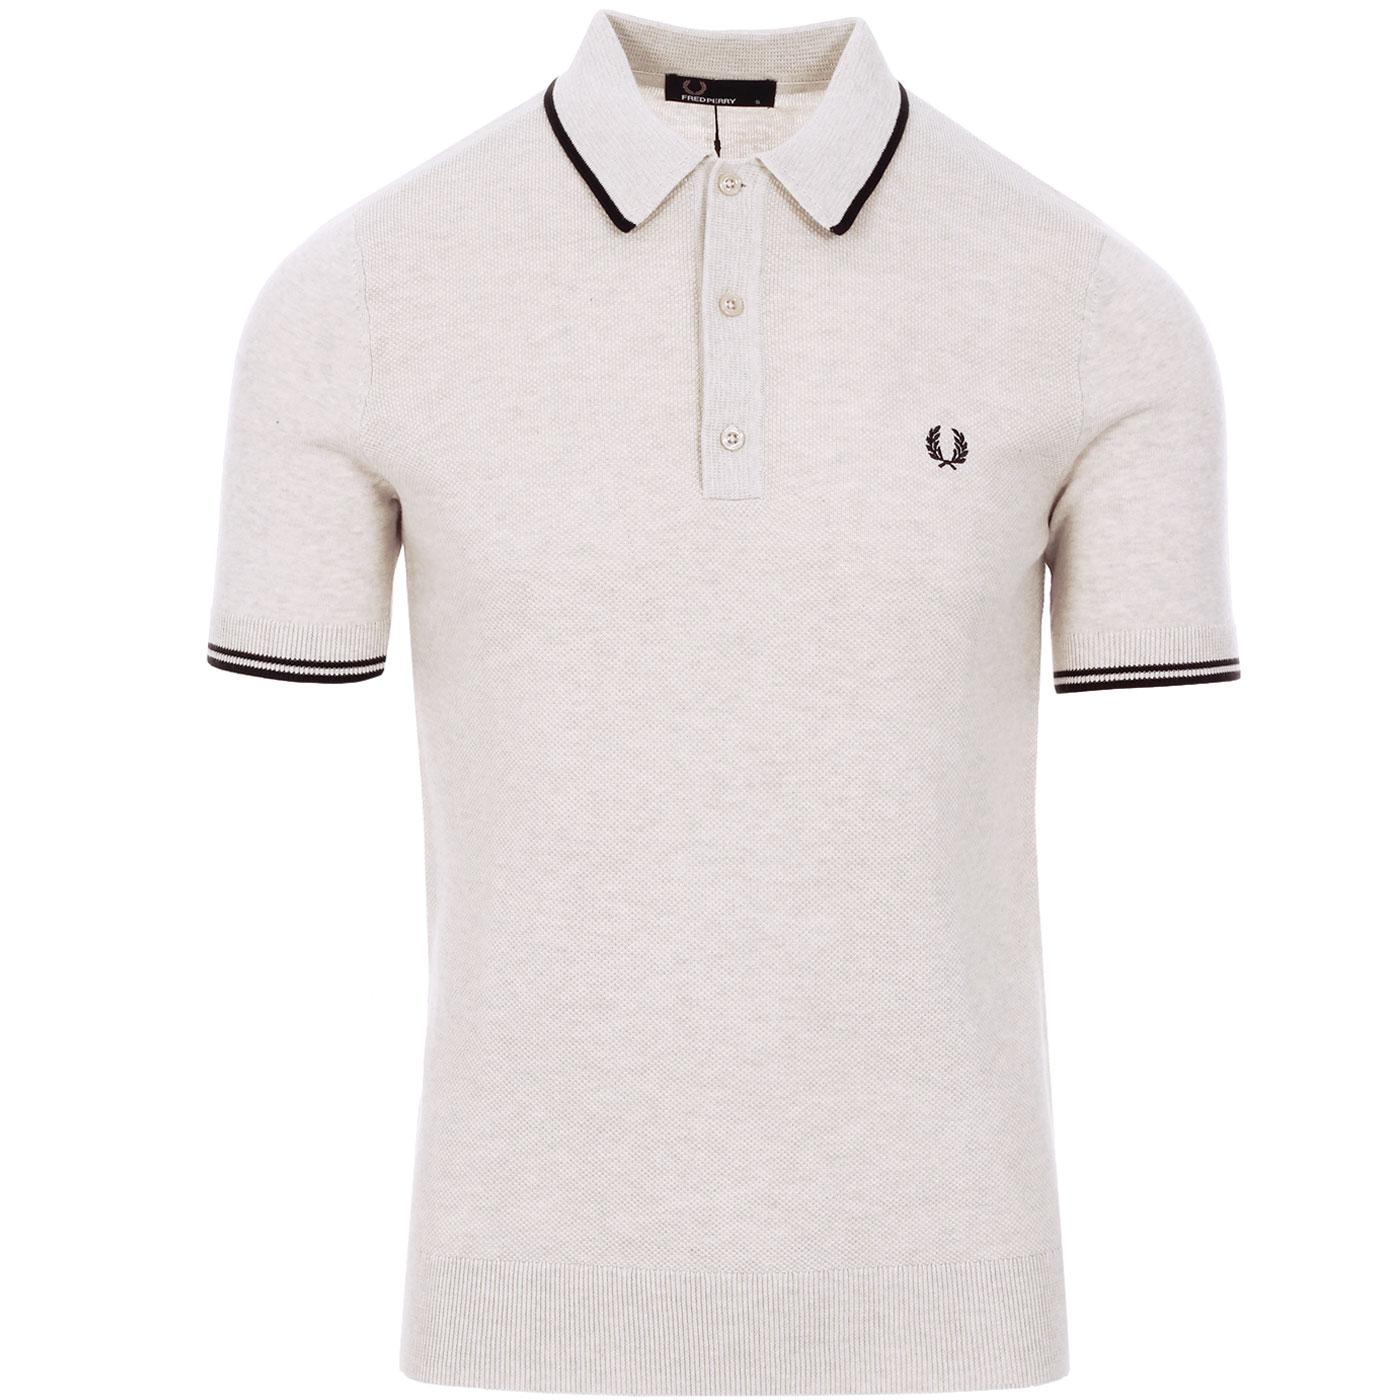 FRED PERRY Men's Mod Tipped Texture Knitted Polo